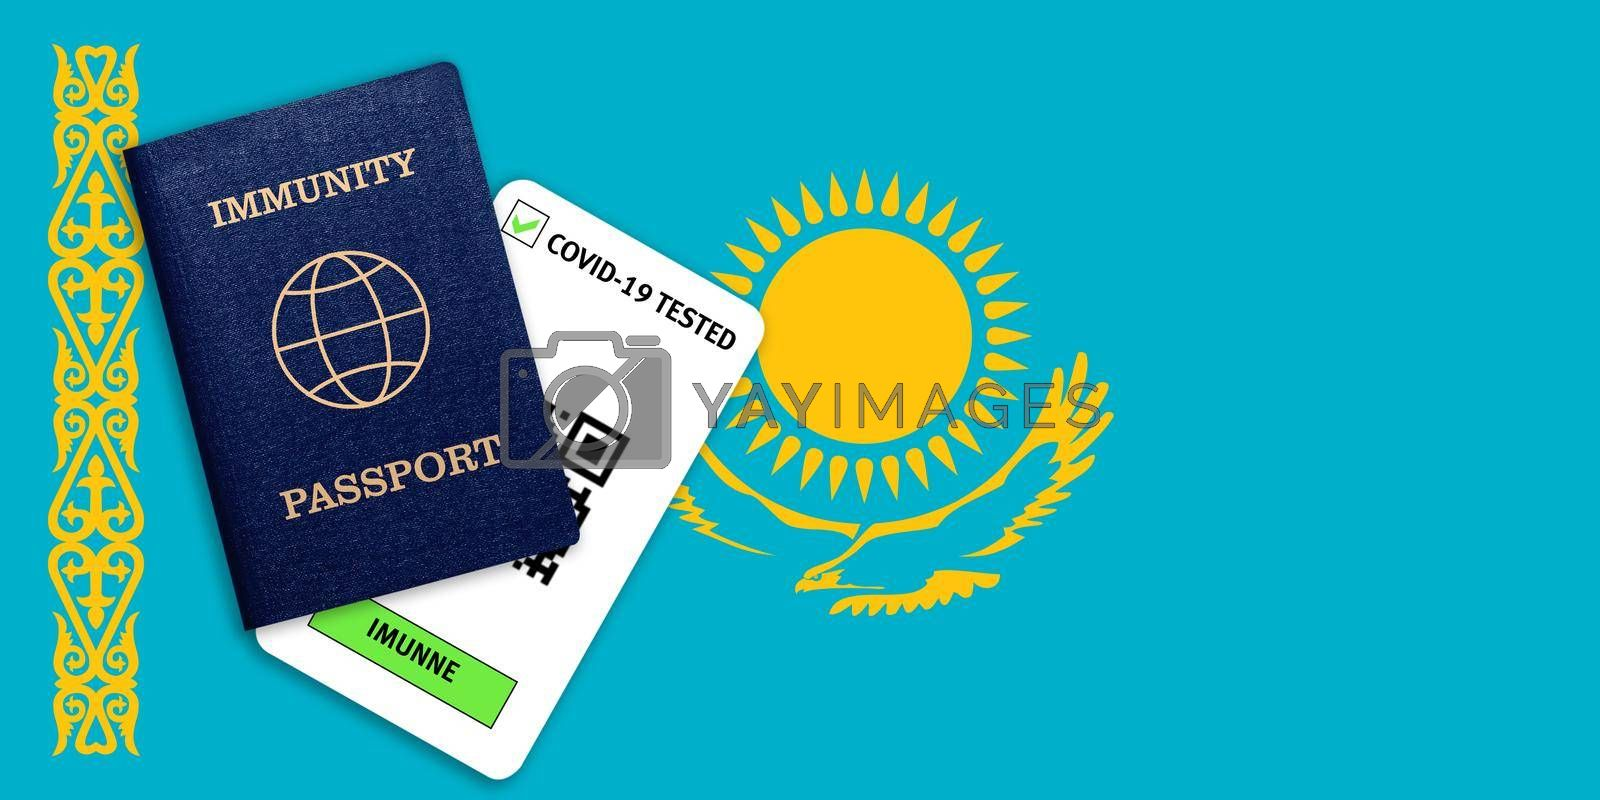 Concept of Immunity passport, certificate for traveling after pandemic for people who have had coronavirus or made vaccine and test result for COVID-19 on flag of Kazakhstan